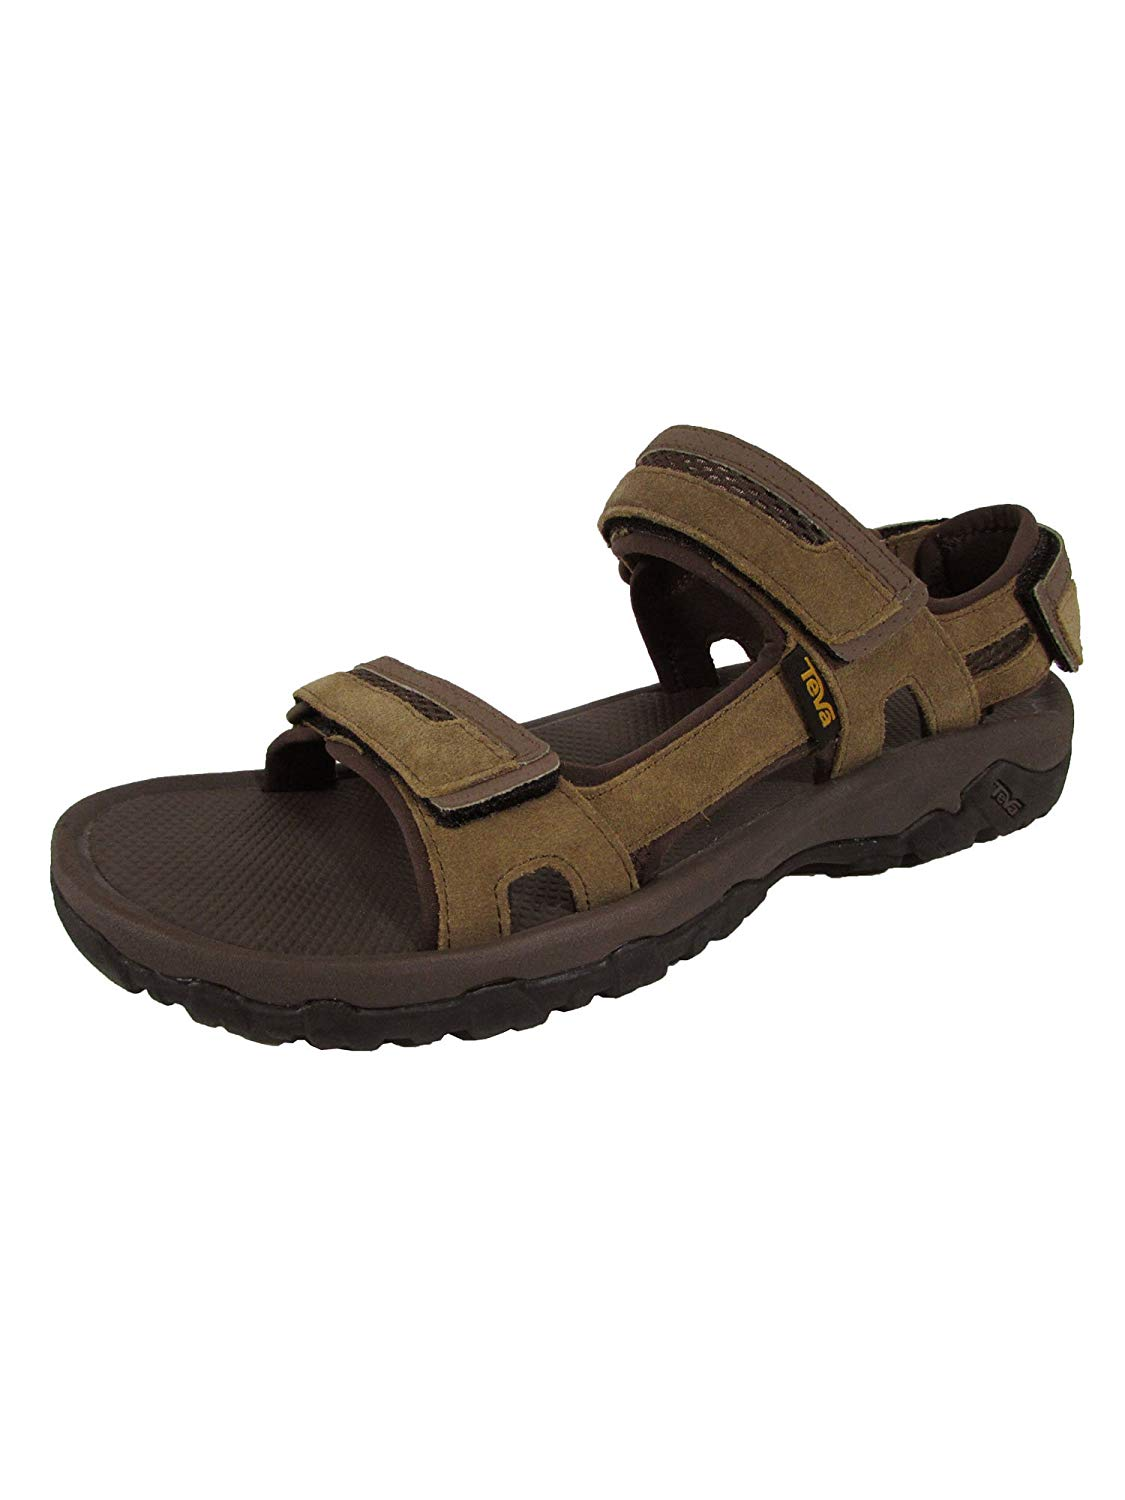 73149bee1abf78 Get Quotations · Teva Mens Hudson Off Road Sandal Shoes